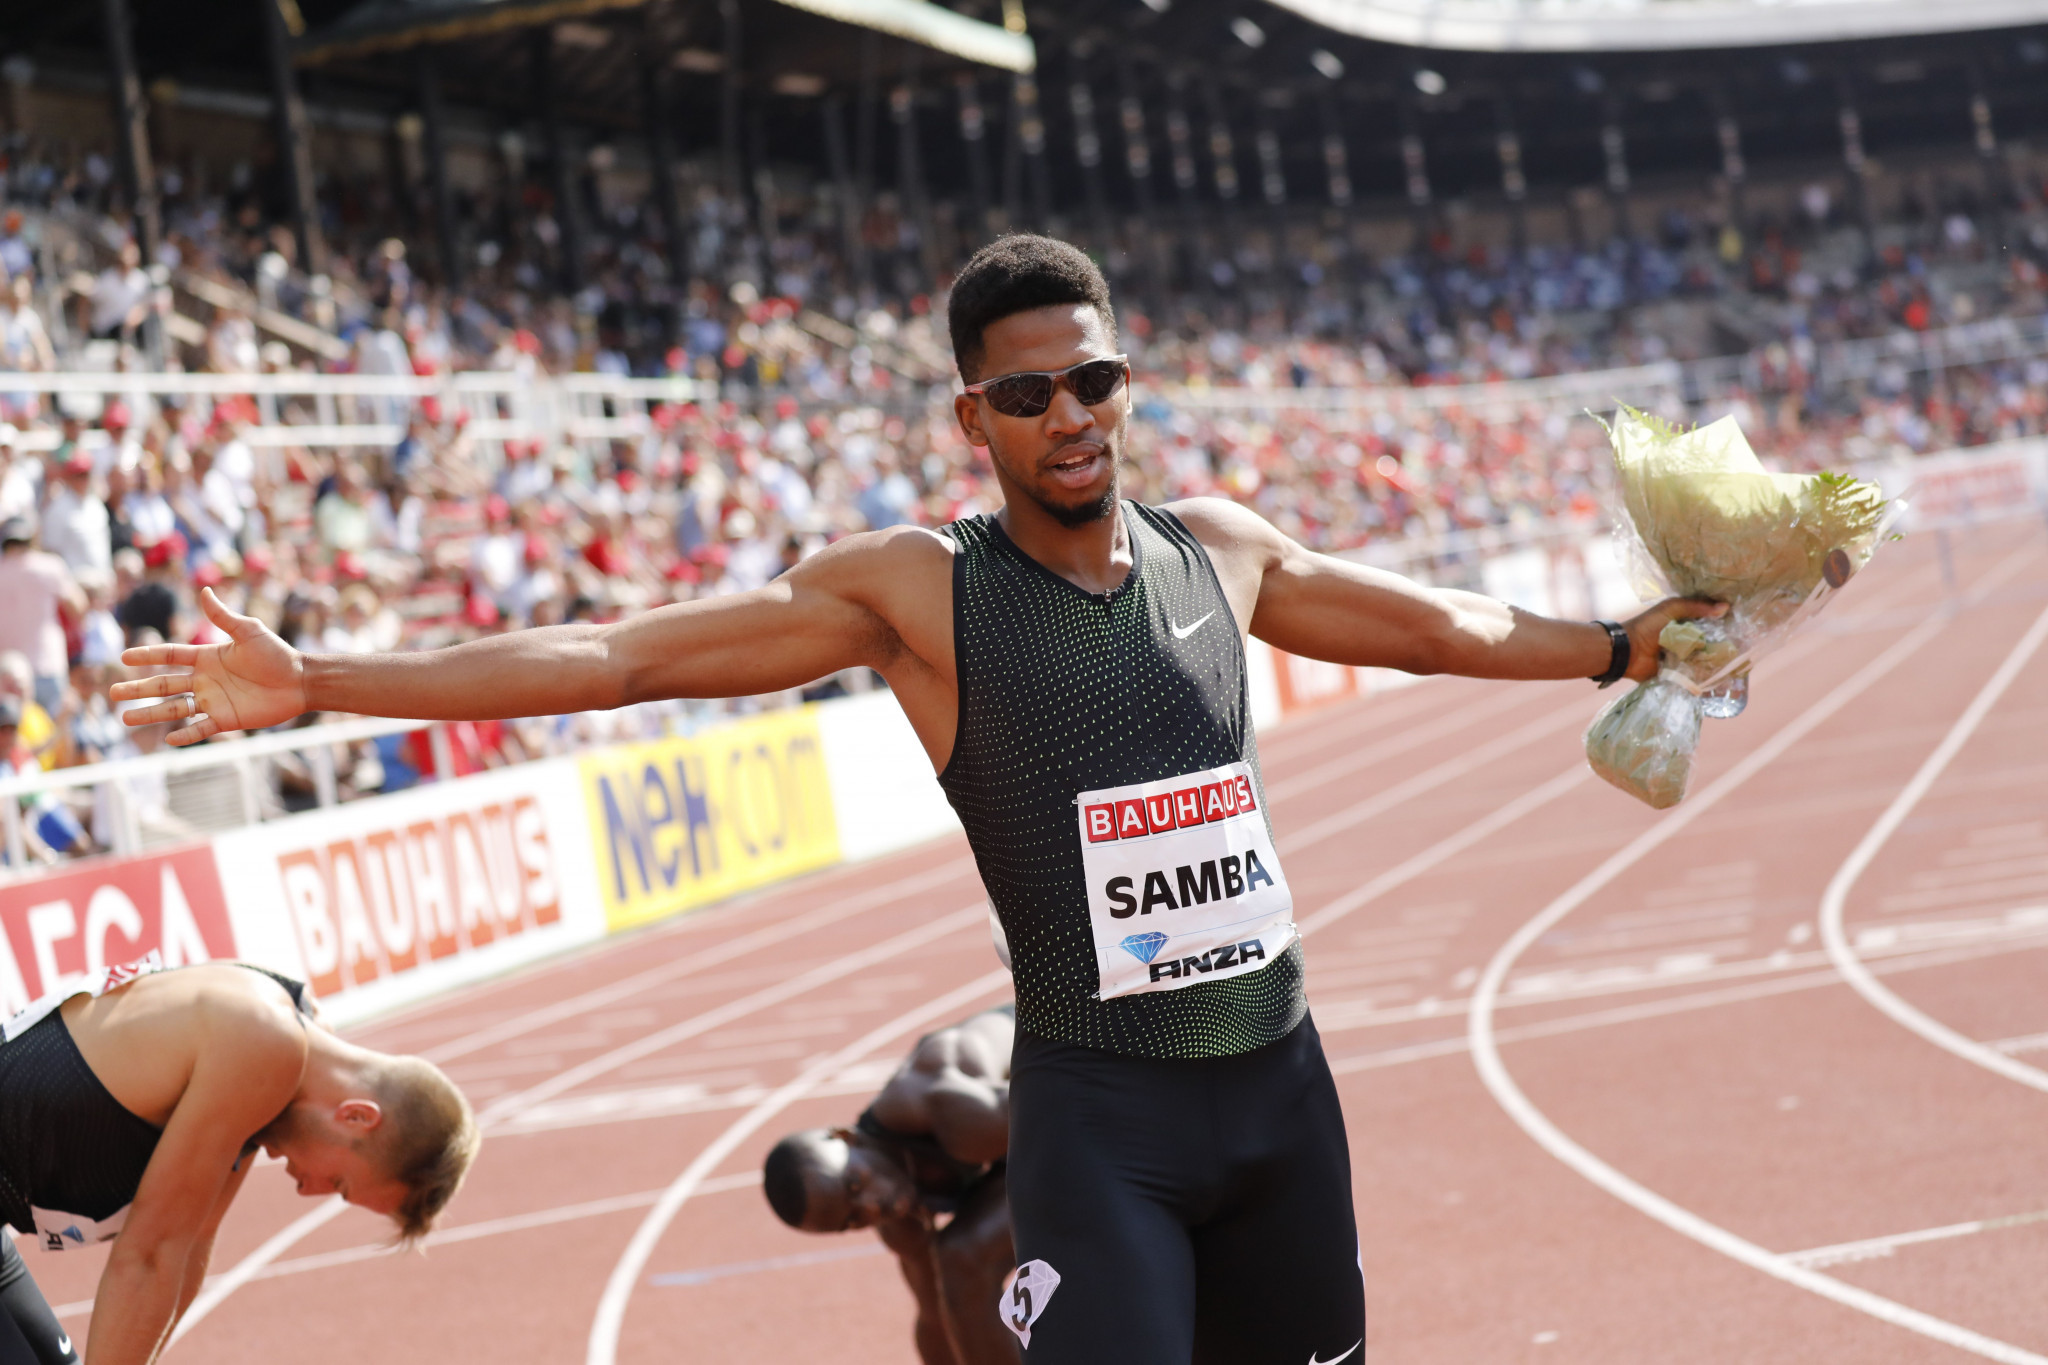 Qatar's Abderrahman Samba has become the second man to run under 47 seconds for the 400m hurdles at the Paris Diamond League meeting  ©Getty Images